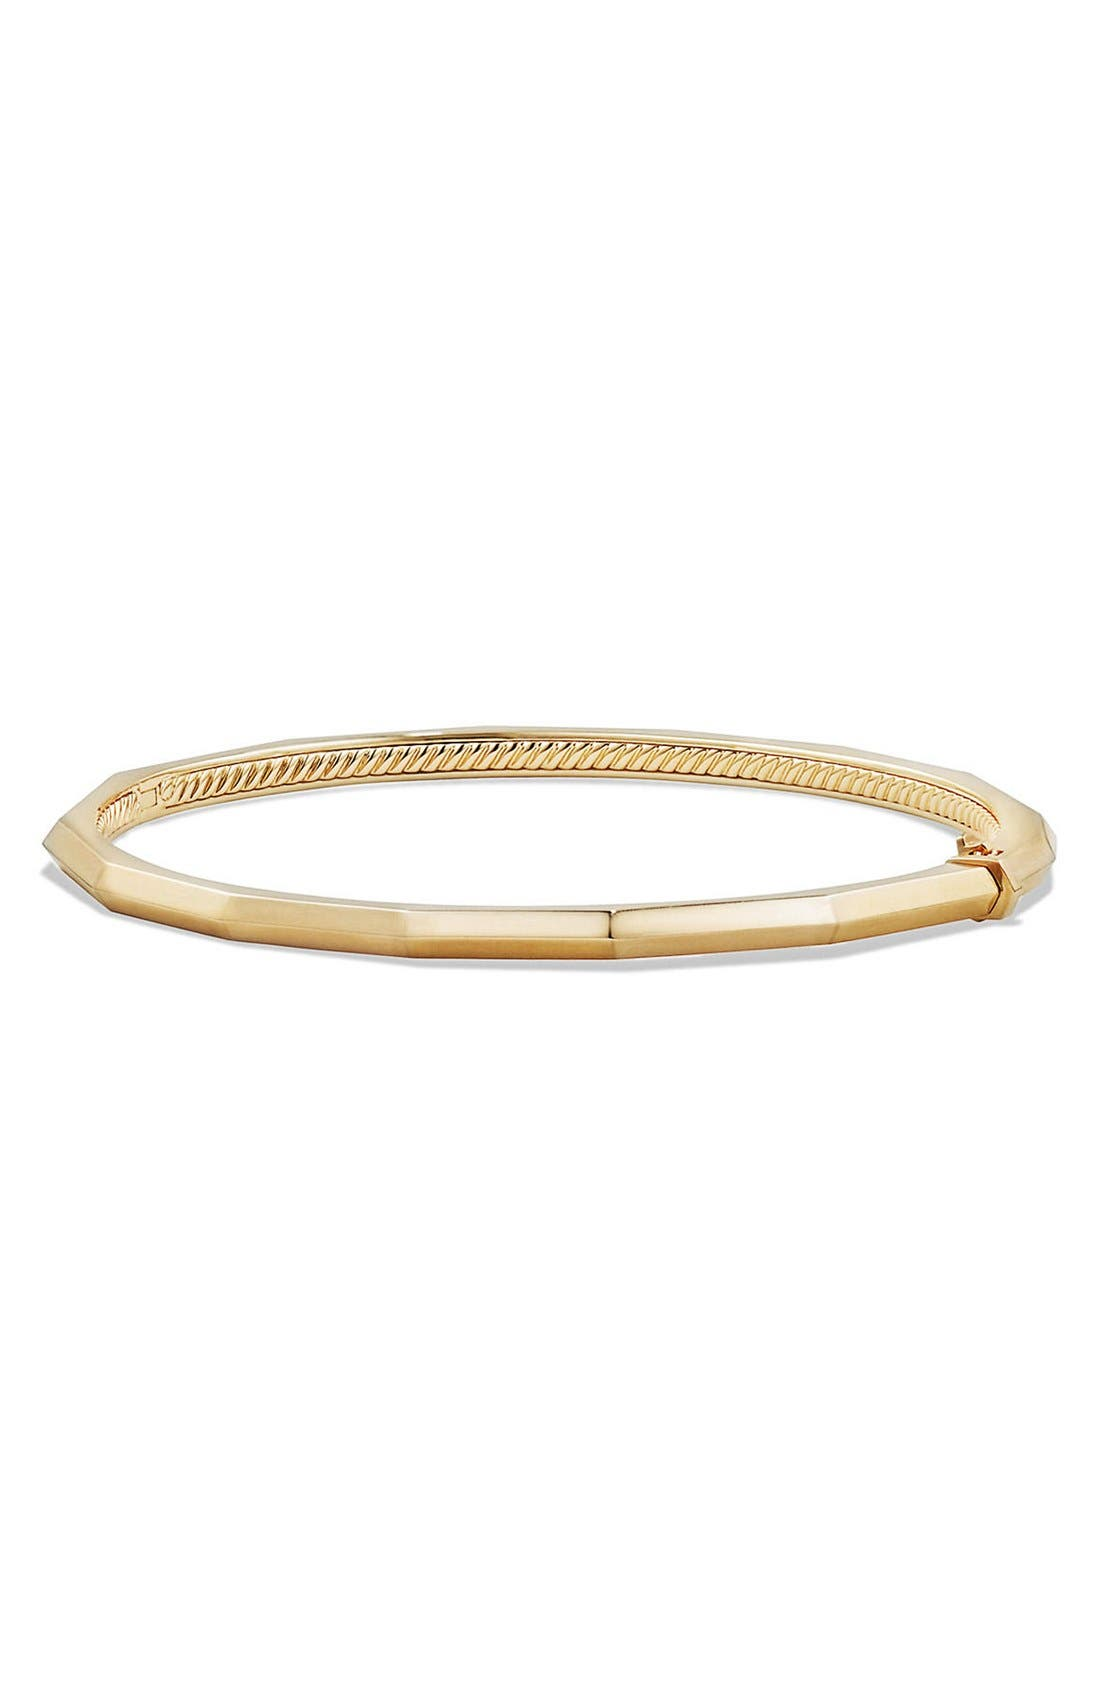 David Yurman Stax Faceted Bracelet